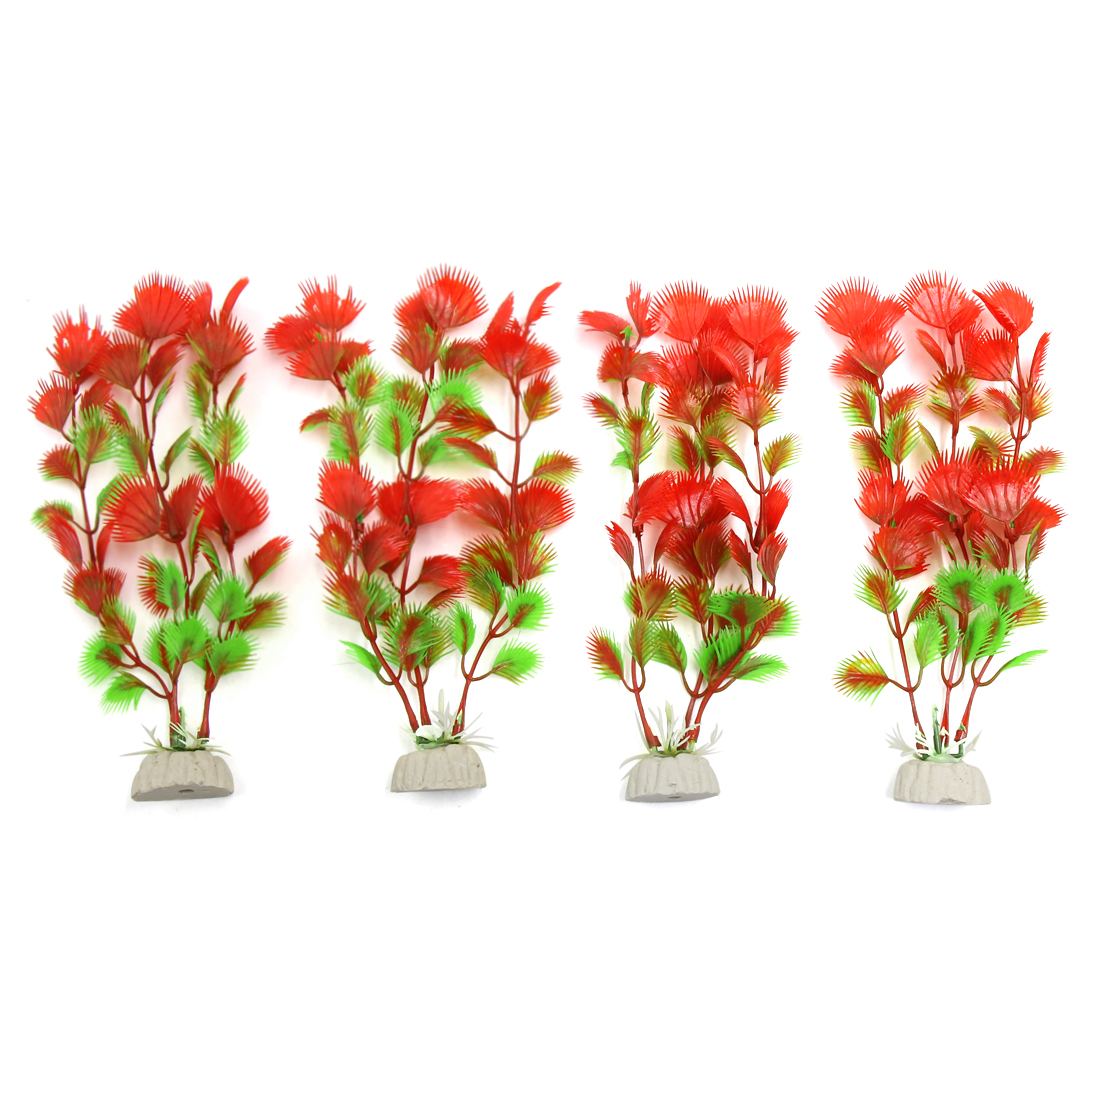 4pcs Plastic Aquarium Plants Fish Tank Water Plant Decorative Landscape